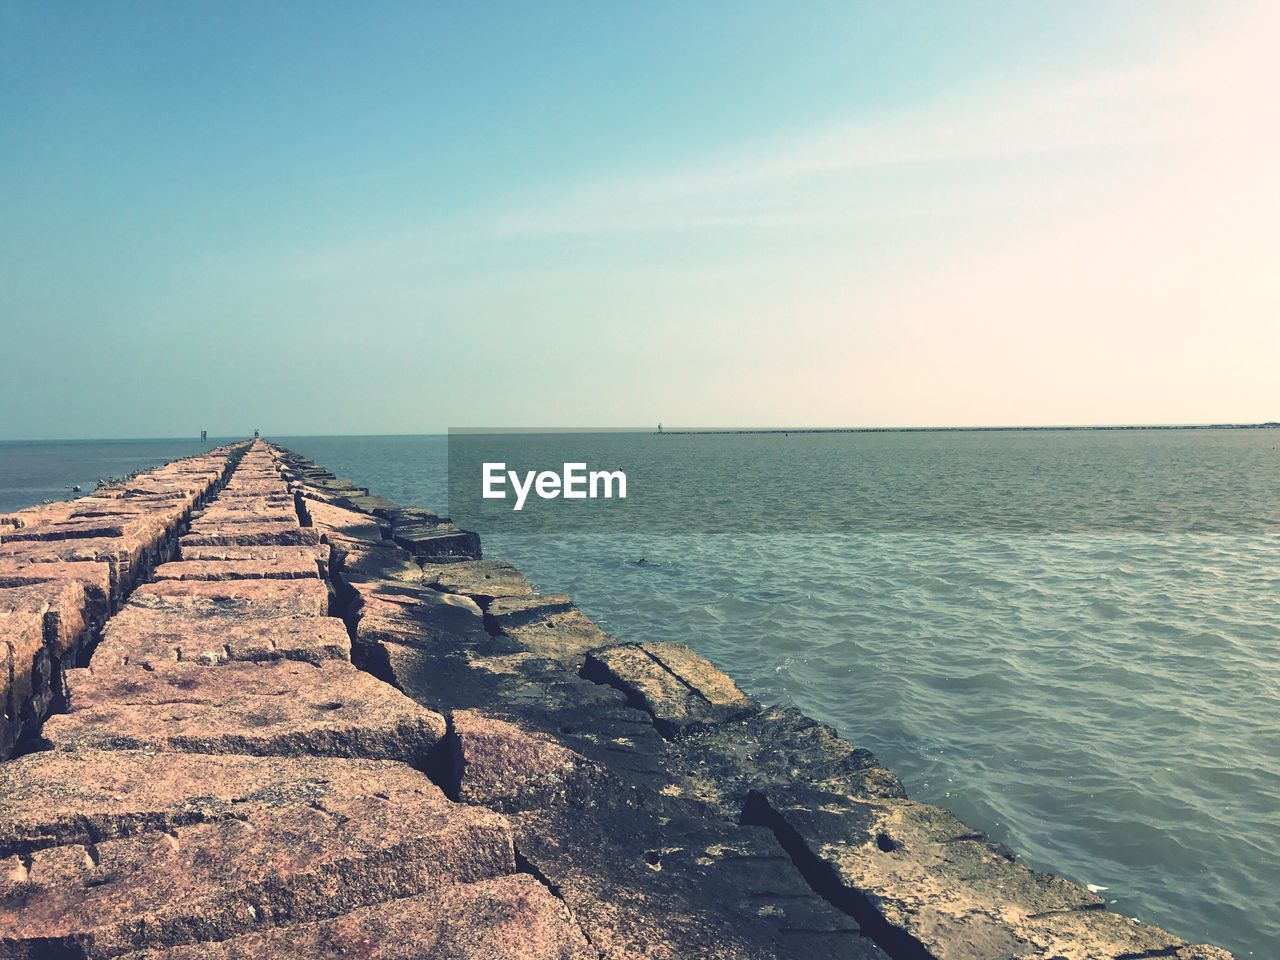 sea, water, horizon over water, tranquil scene, tranquility, scenics, nature, beauty in nature, clear sky, outdoors, day, rock - object, sky, no people, groyne